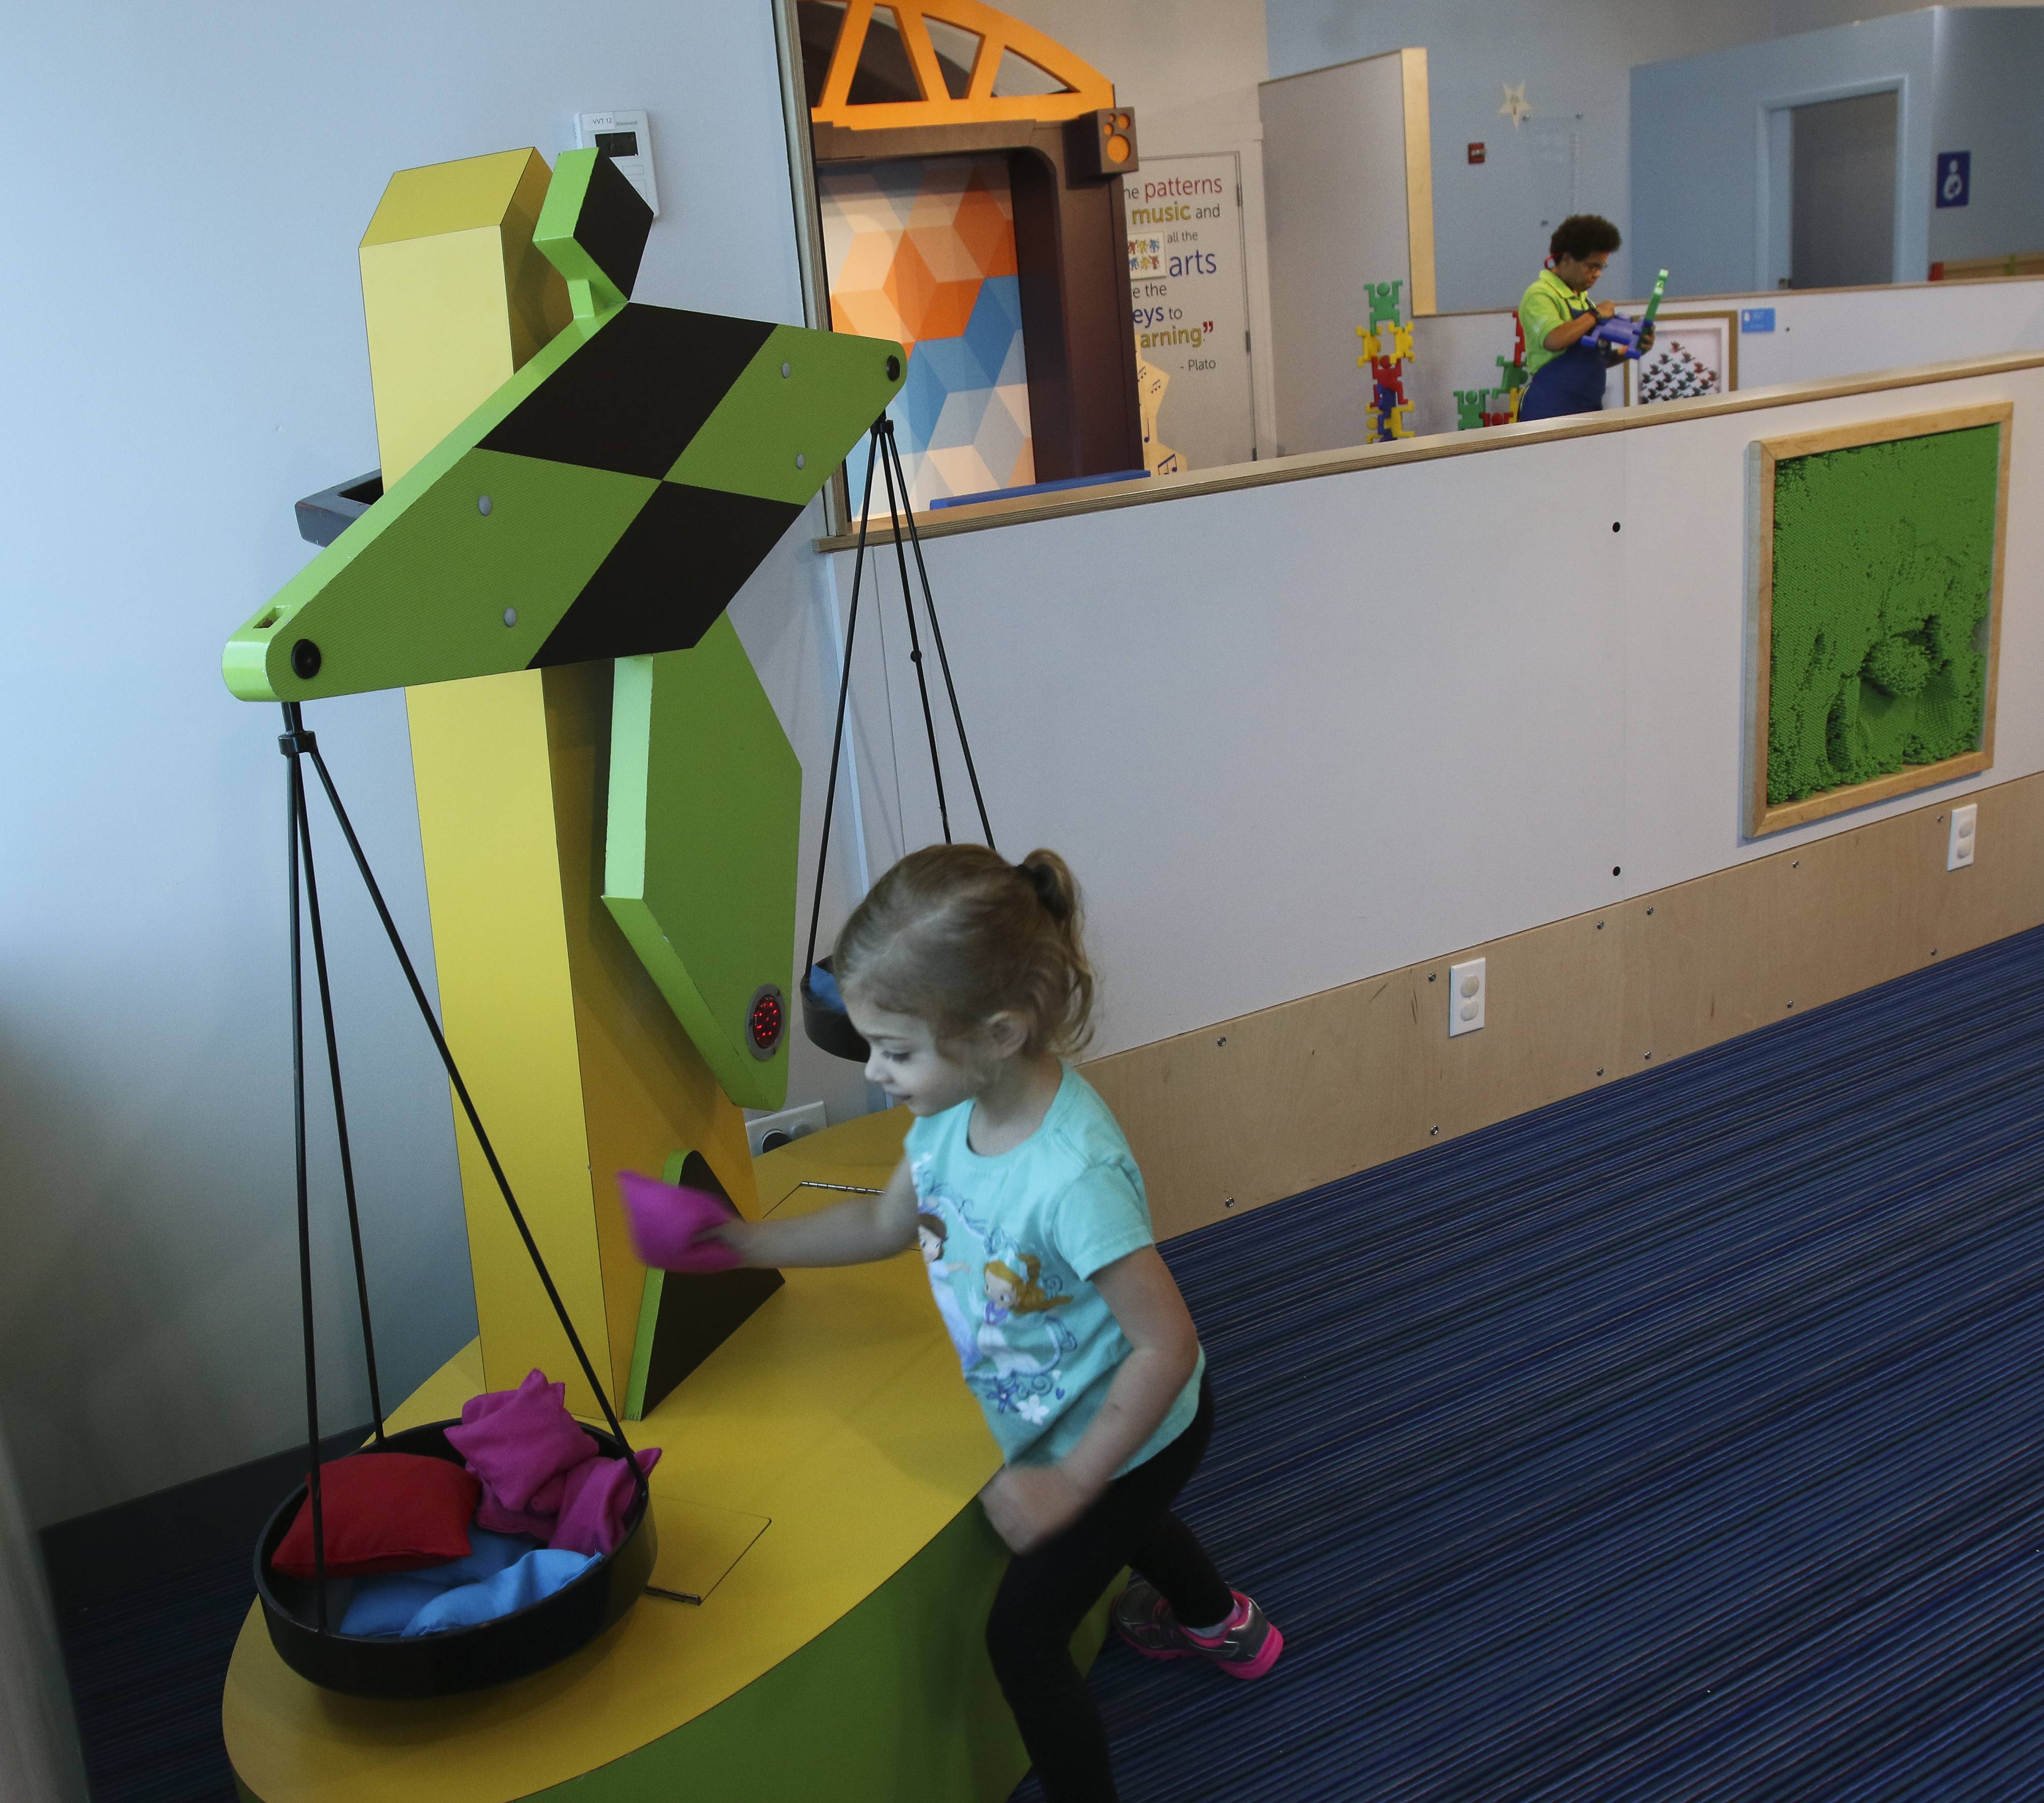 Emily Prothe, 3, of Wheaton, tries out a balance scale at the new Math+Motion exhibit at the DuPage Children's Museum.